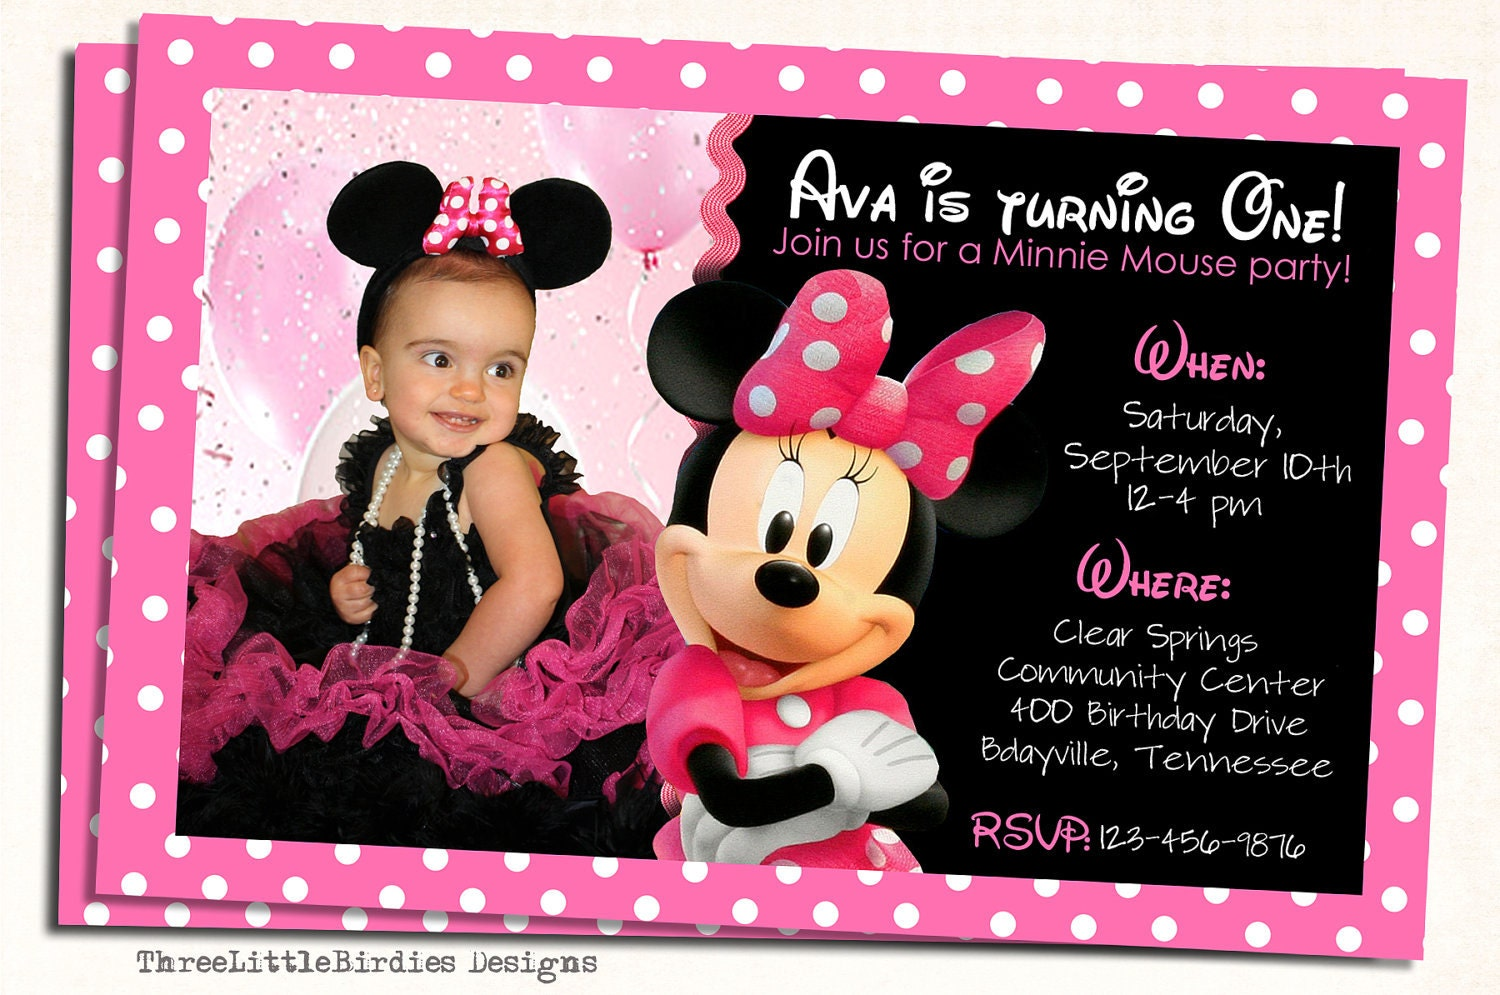 Minnie Mouse Photo Birthday Invitations is an amazing ideas you had to choose for invitation design